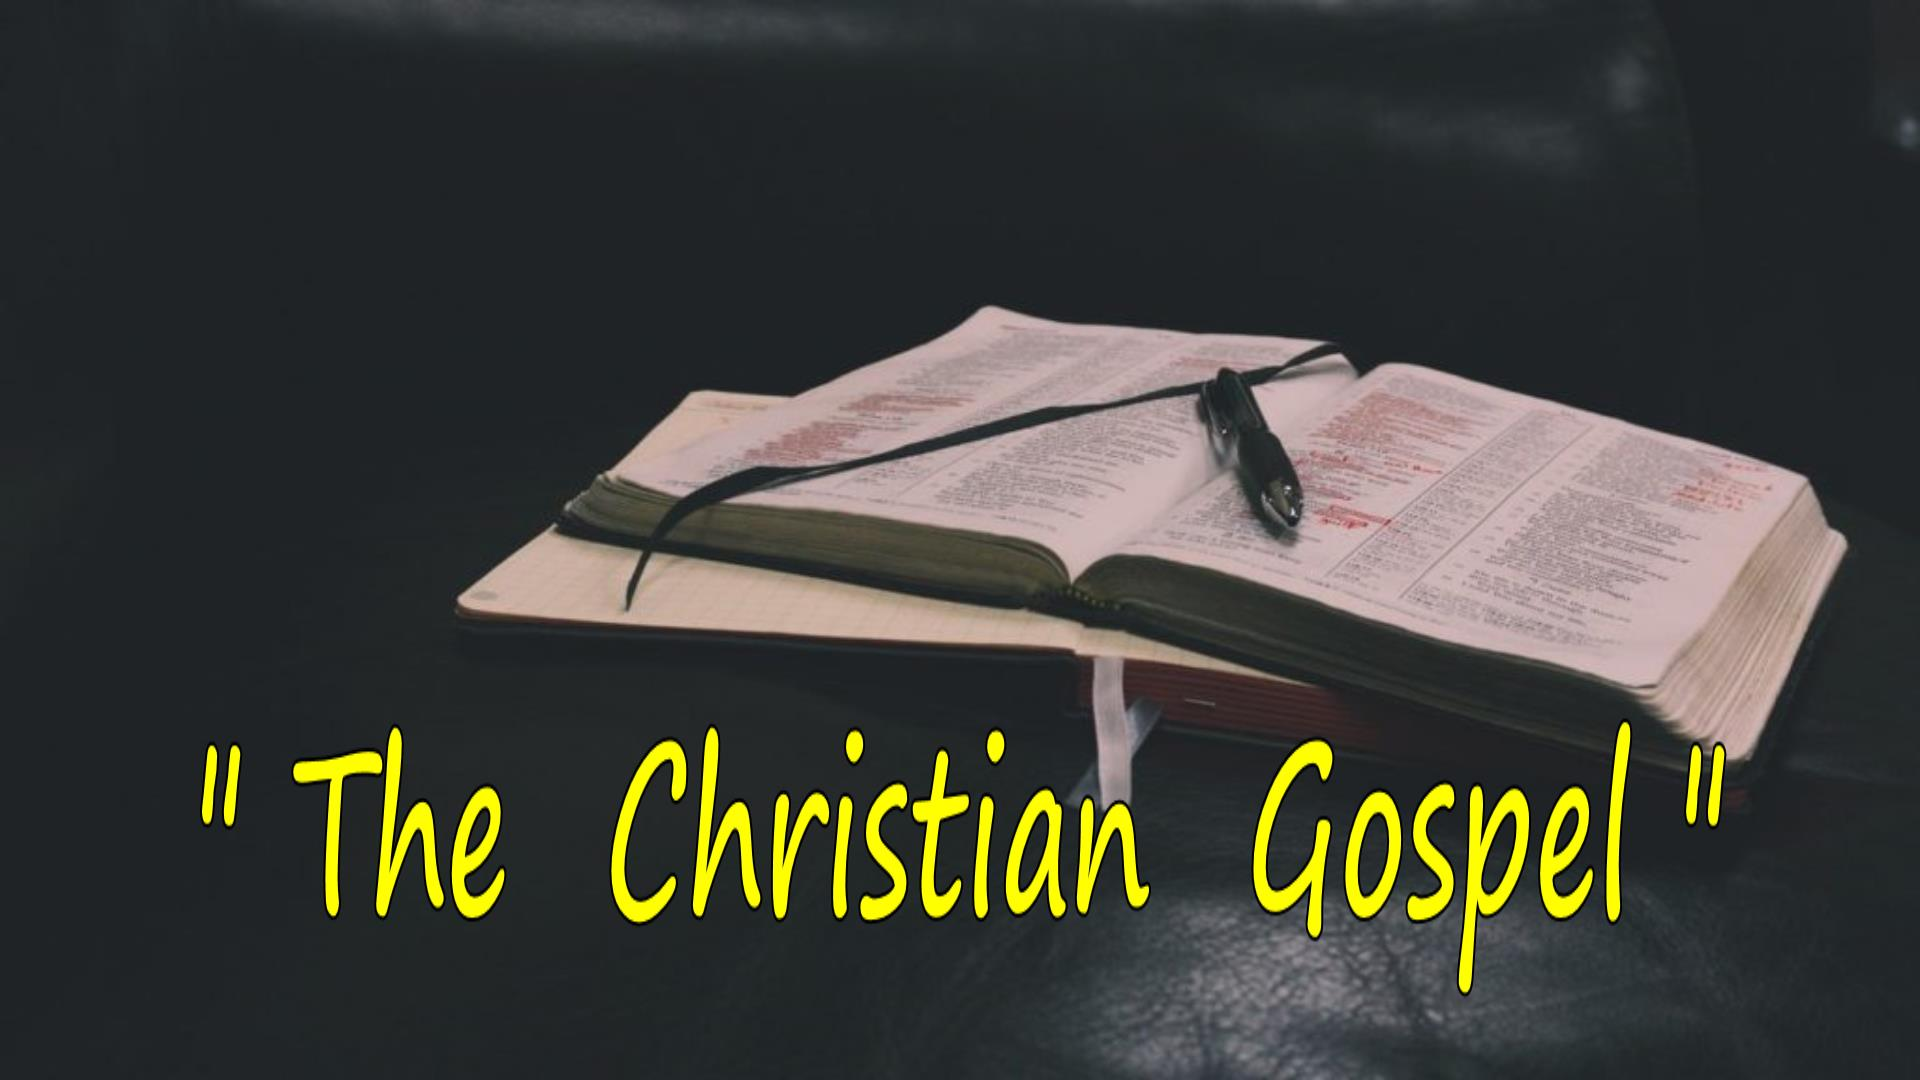 The Christian Gospel